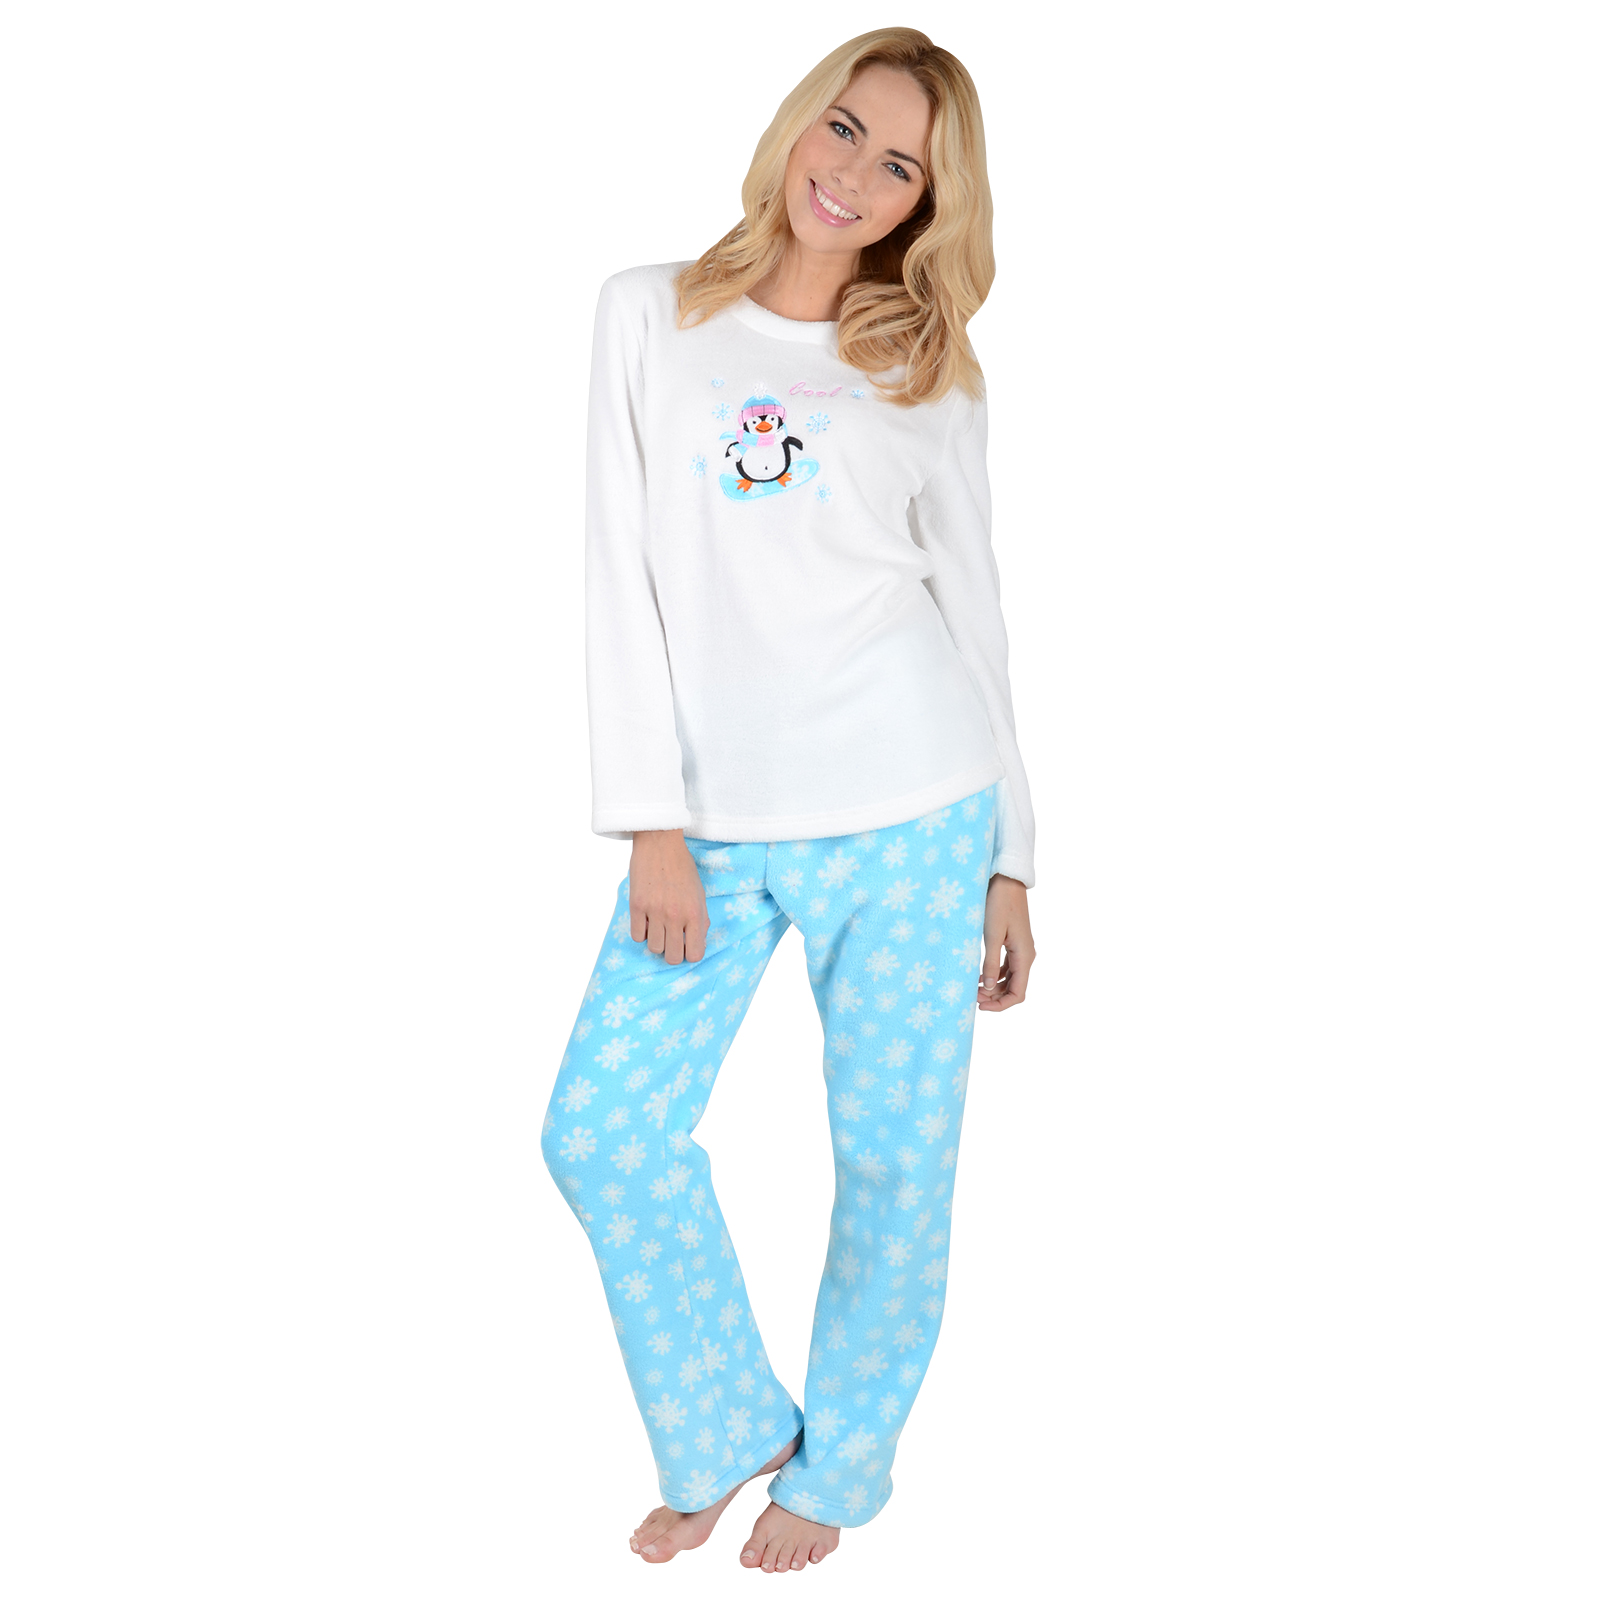 Peace on Earth Women's Pajamas. She'll love this charming twist on the classic Fair Isle pattern, featuring penguins, polar bears, snowflakes and trees that combine to make a wonderful winter print. Top is loose-fitting in Teal blue and details our exclusive Fair Isle print in a singular graphic.